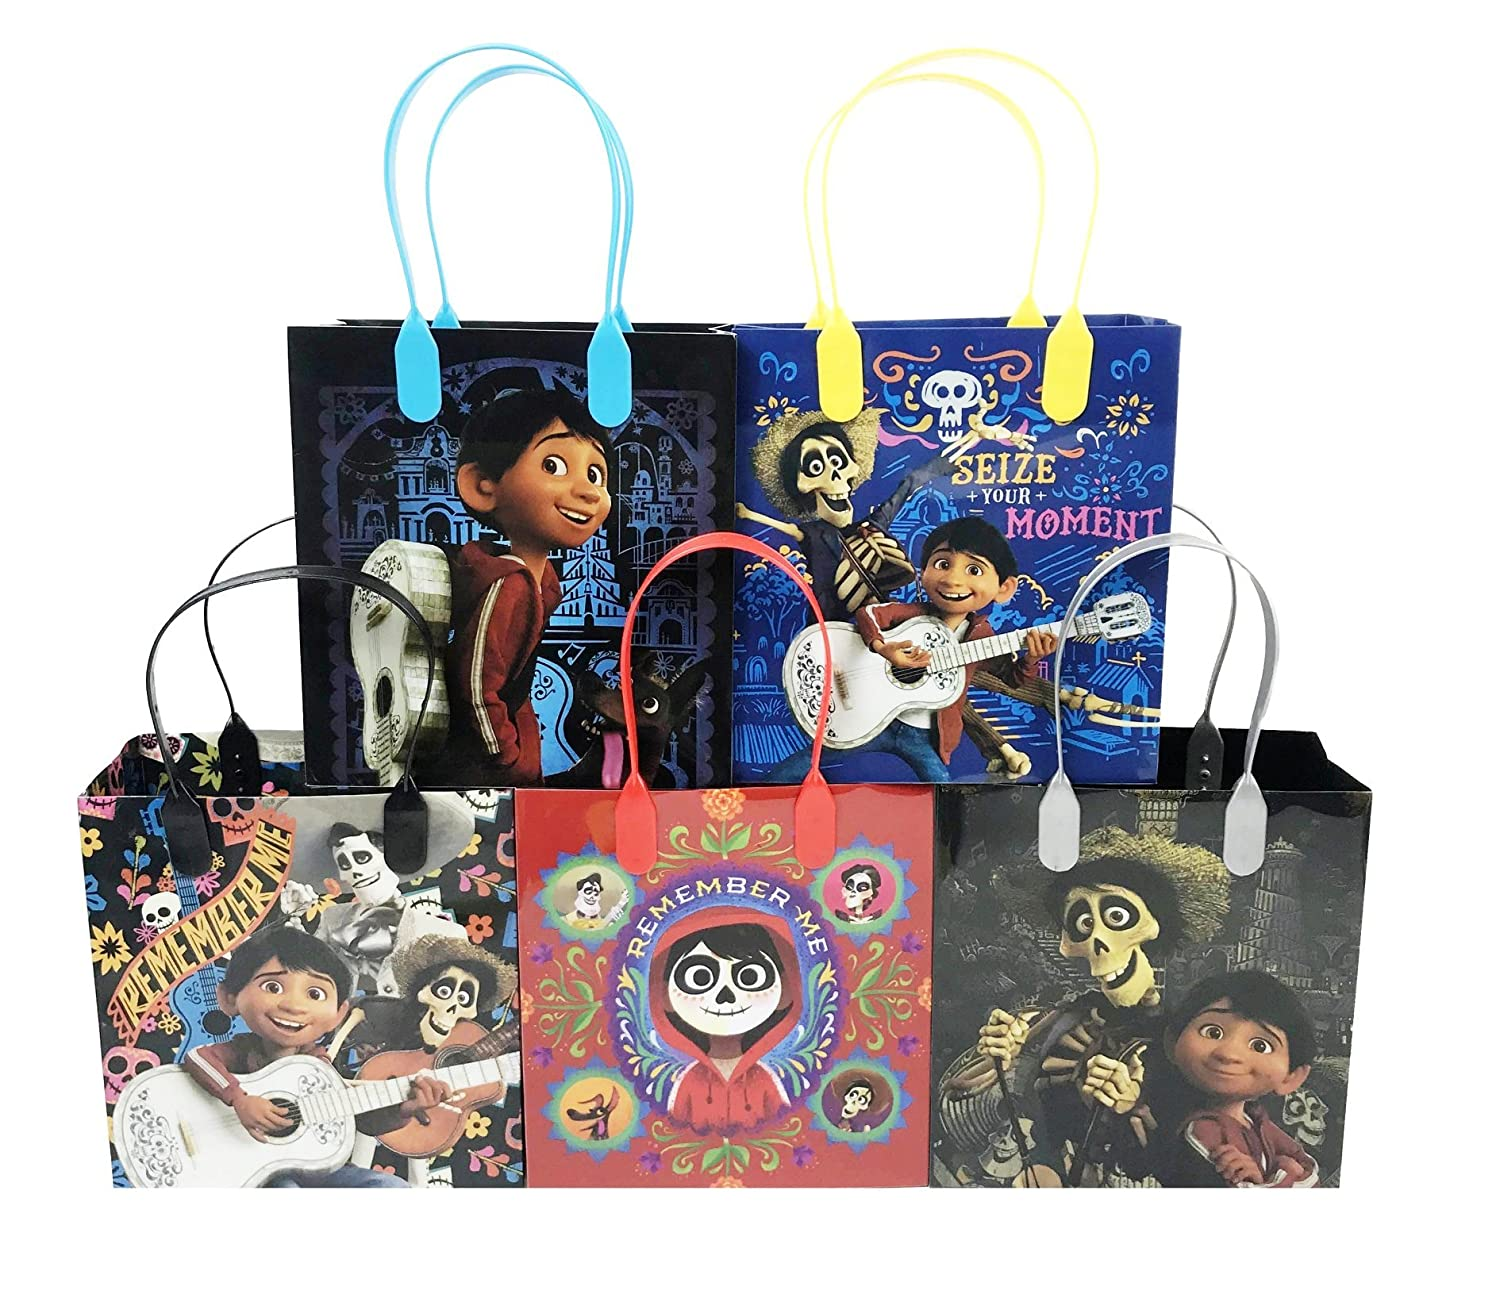 Disney/Pixar Coco Party Favor Reusable Goodie bags/ Gift Bags - Premium Quality - 24pc